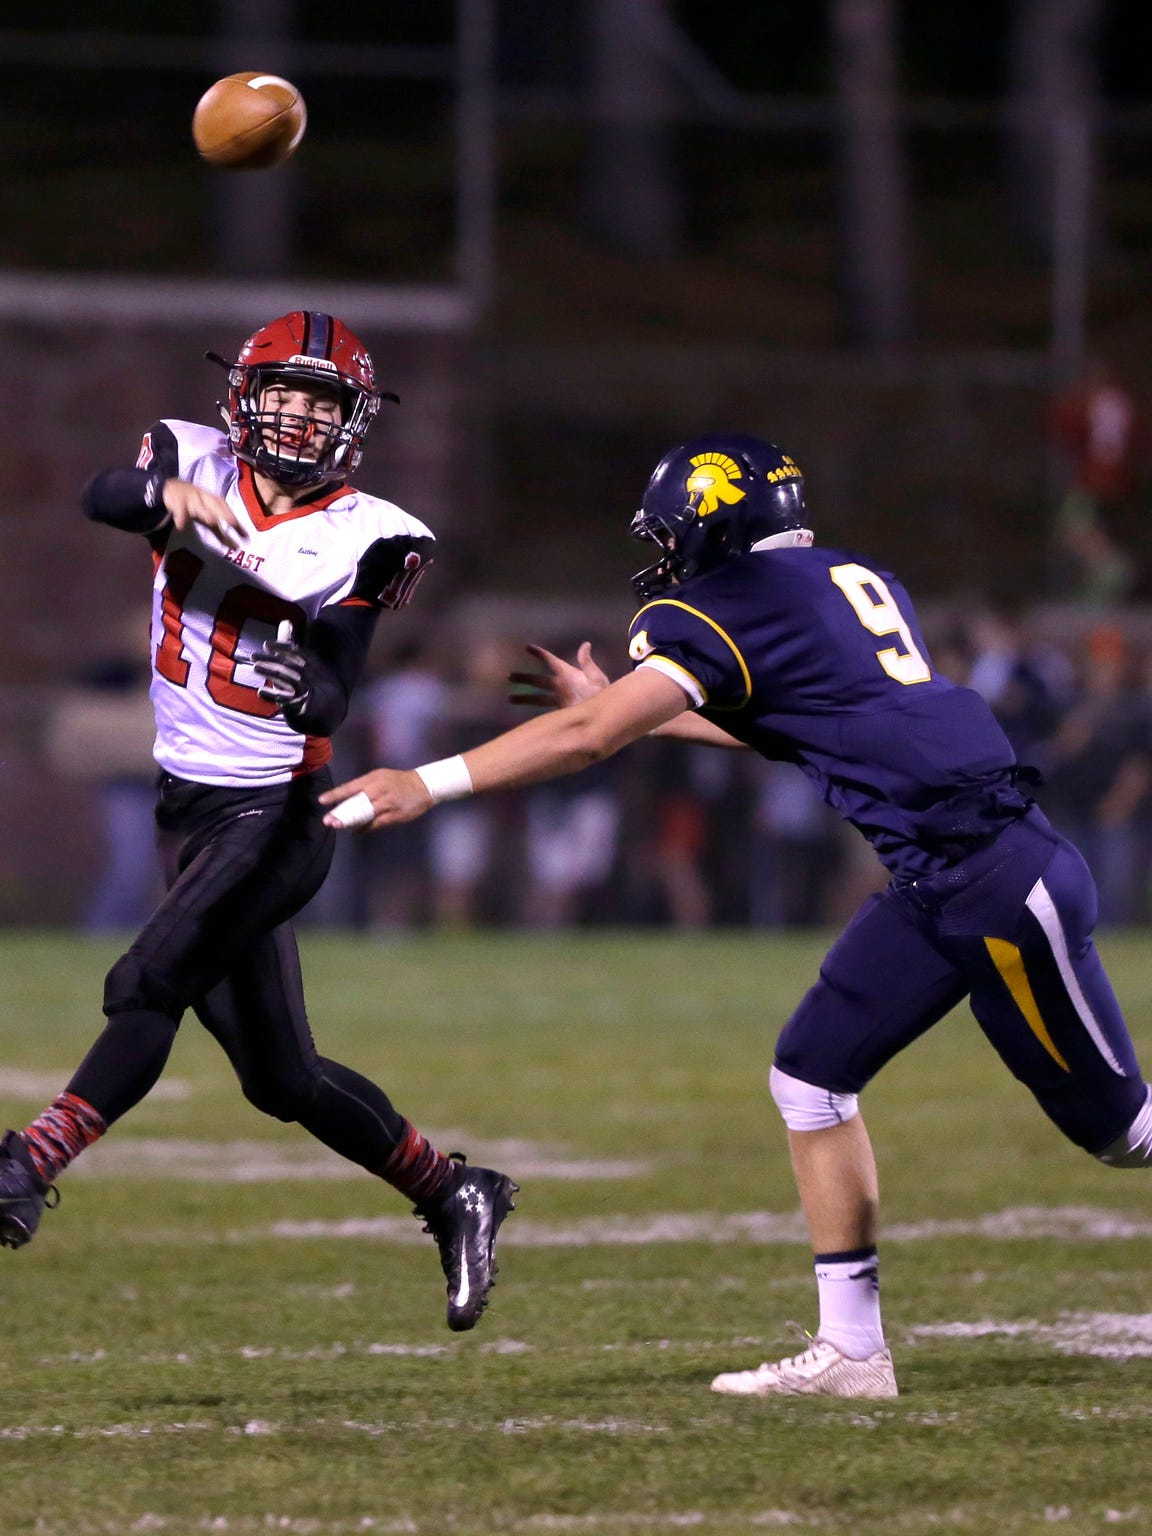 Wausau East's Alex Becker throws an incomplete pass